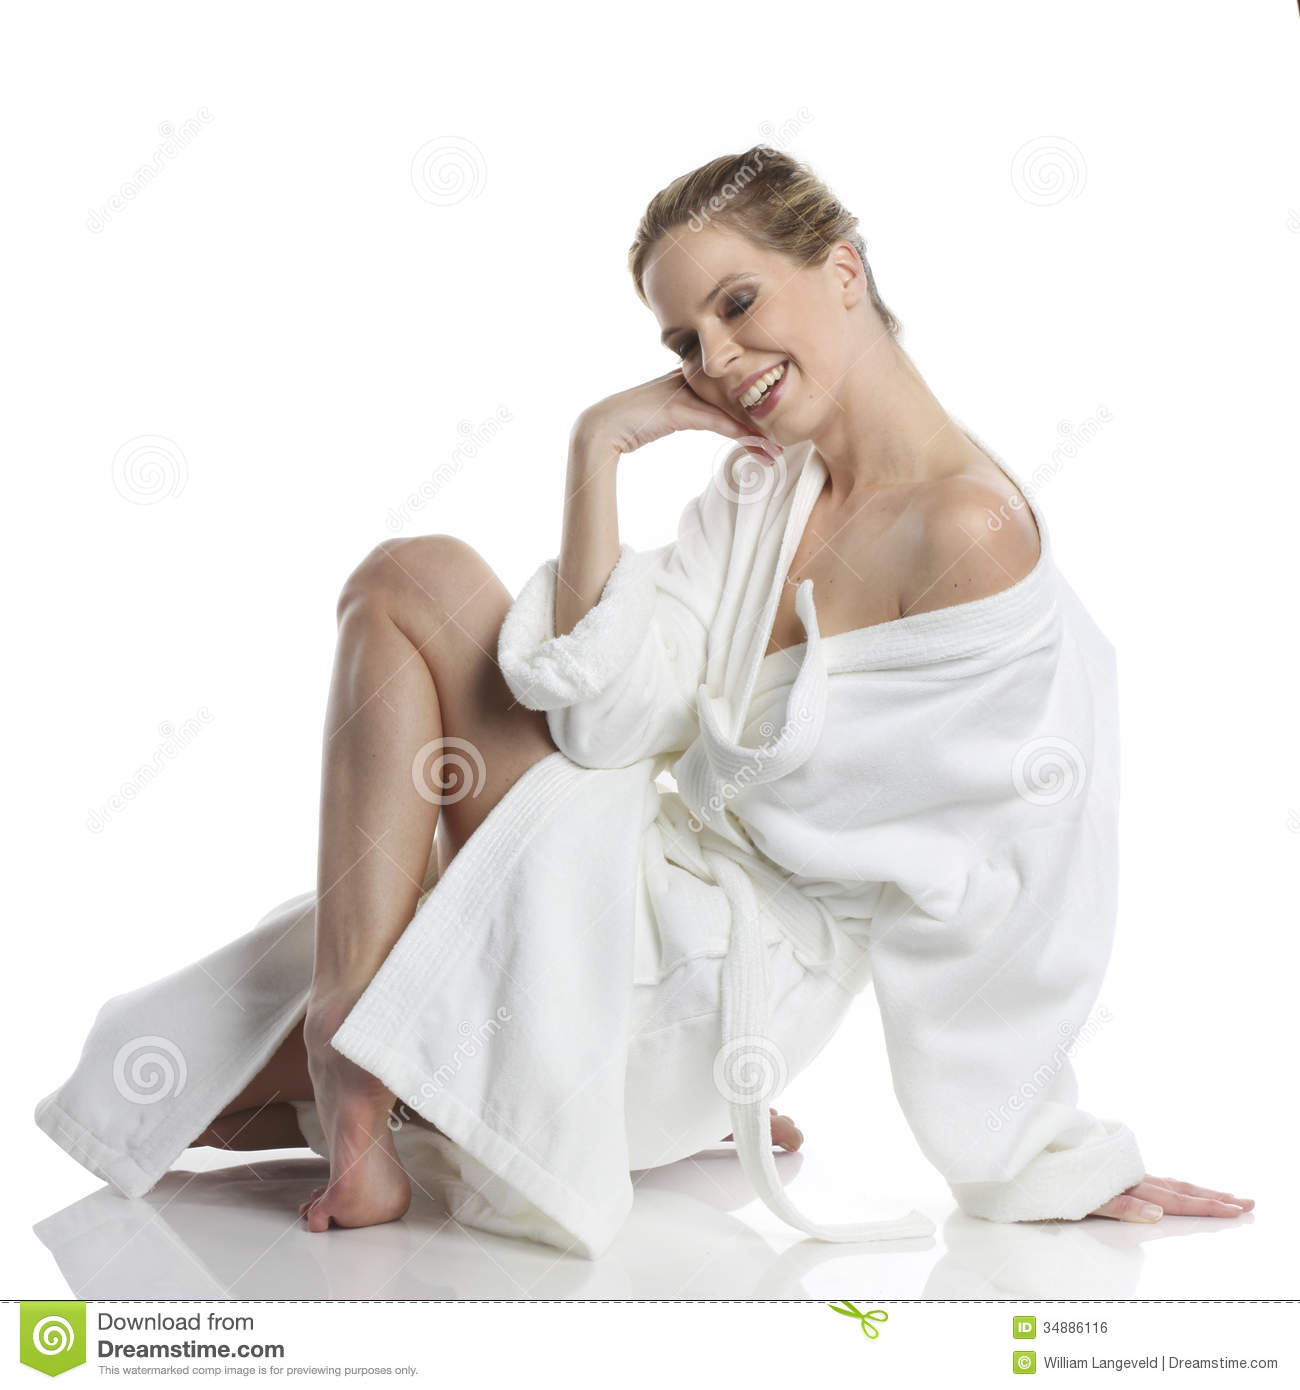 Very beautiful woman dressed in a white bathrobe in wellness style 23272b7cc